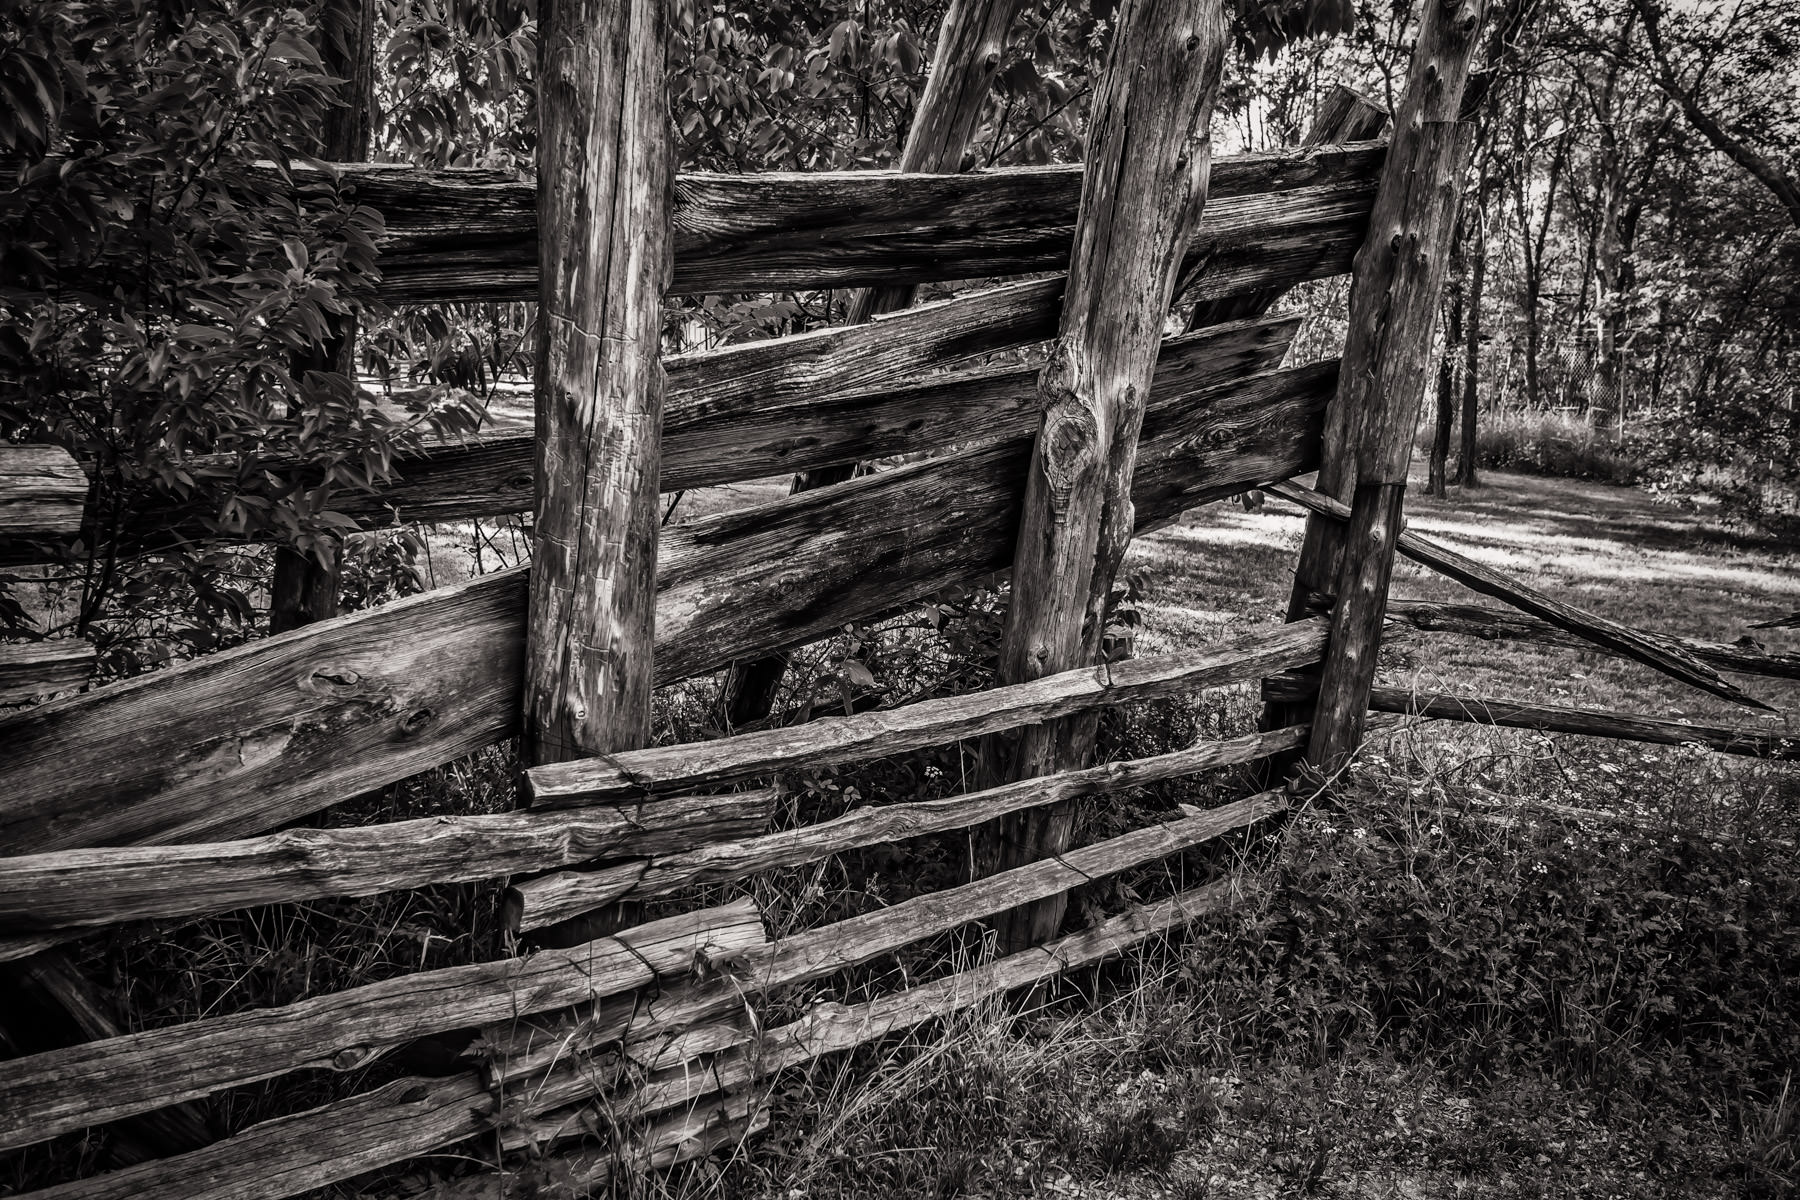 A dilapidated wooden fence at Texas' Cedar Hill State Park's Penn Farm.